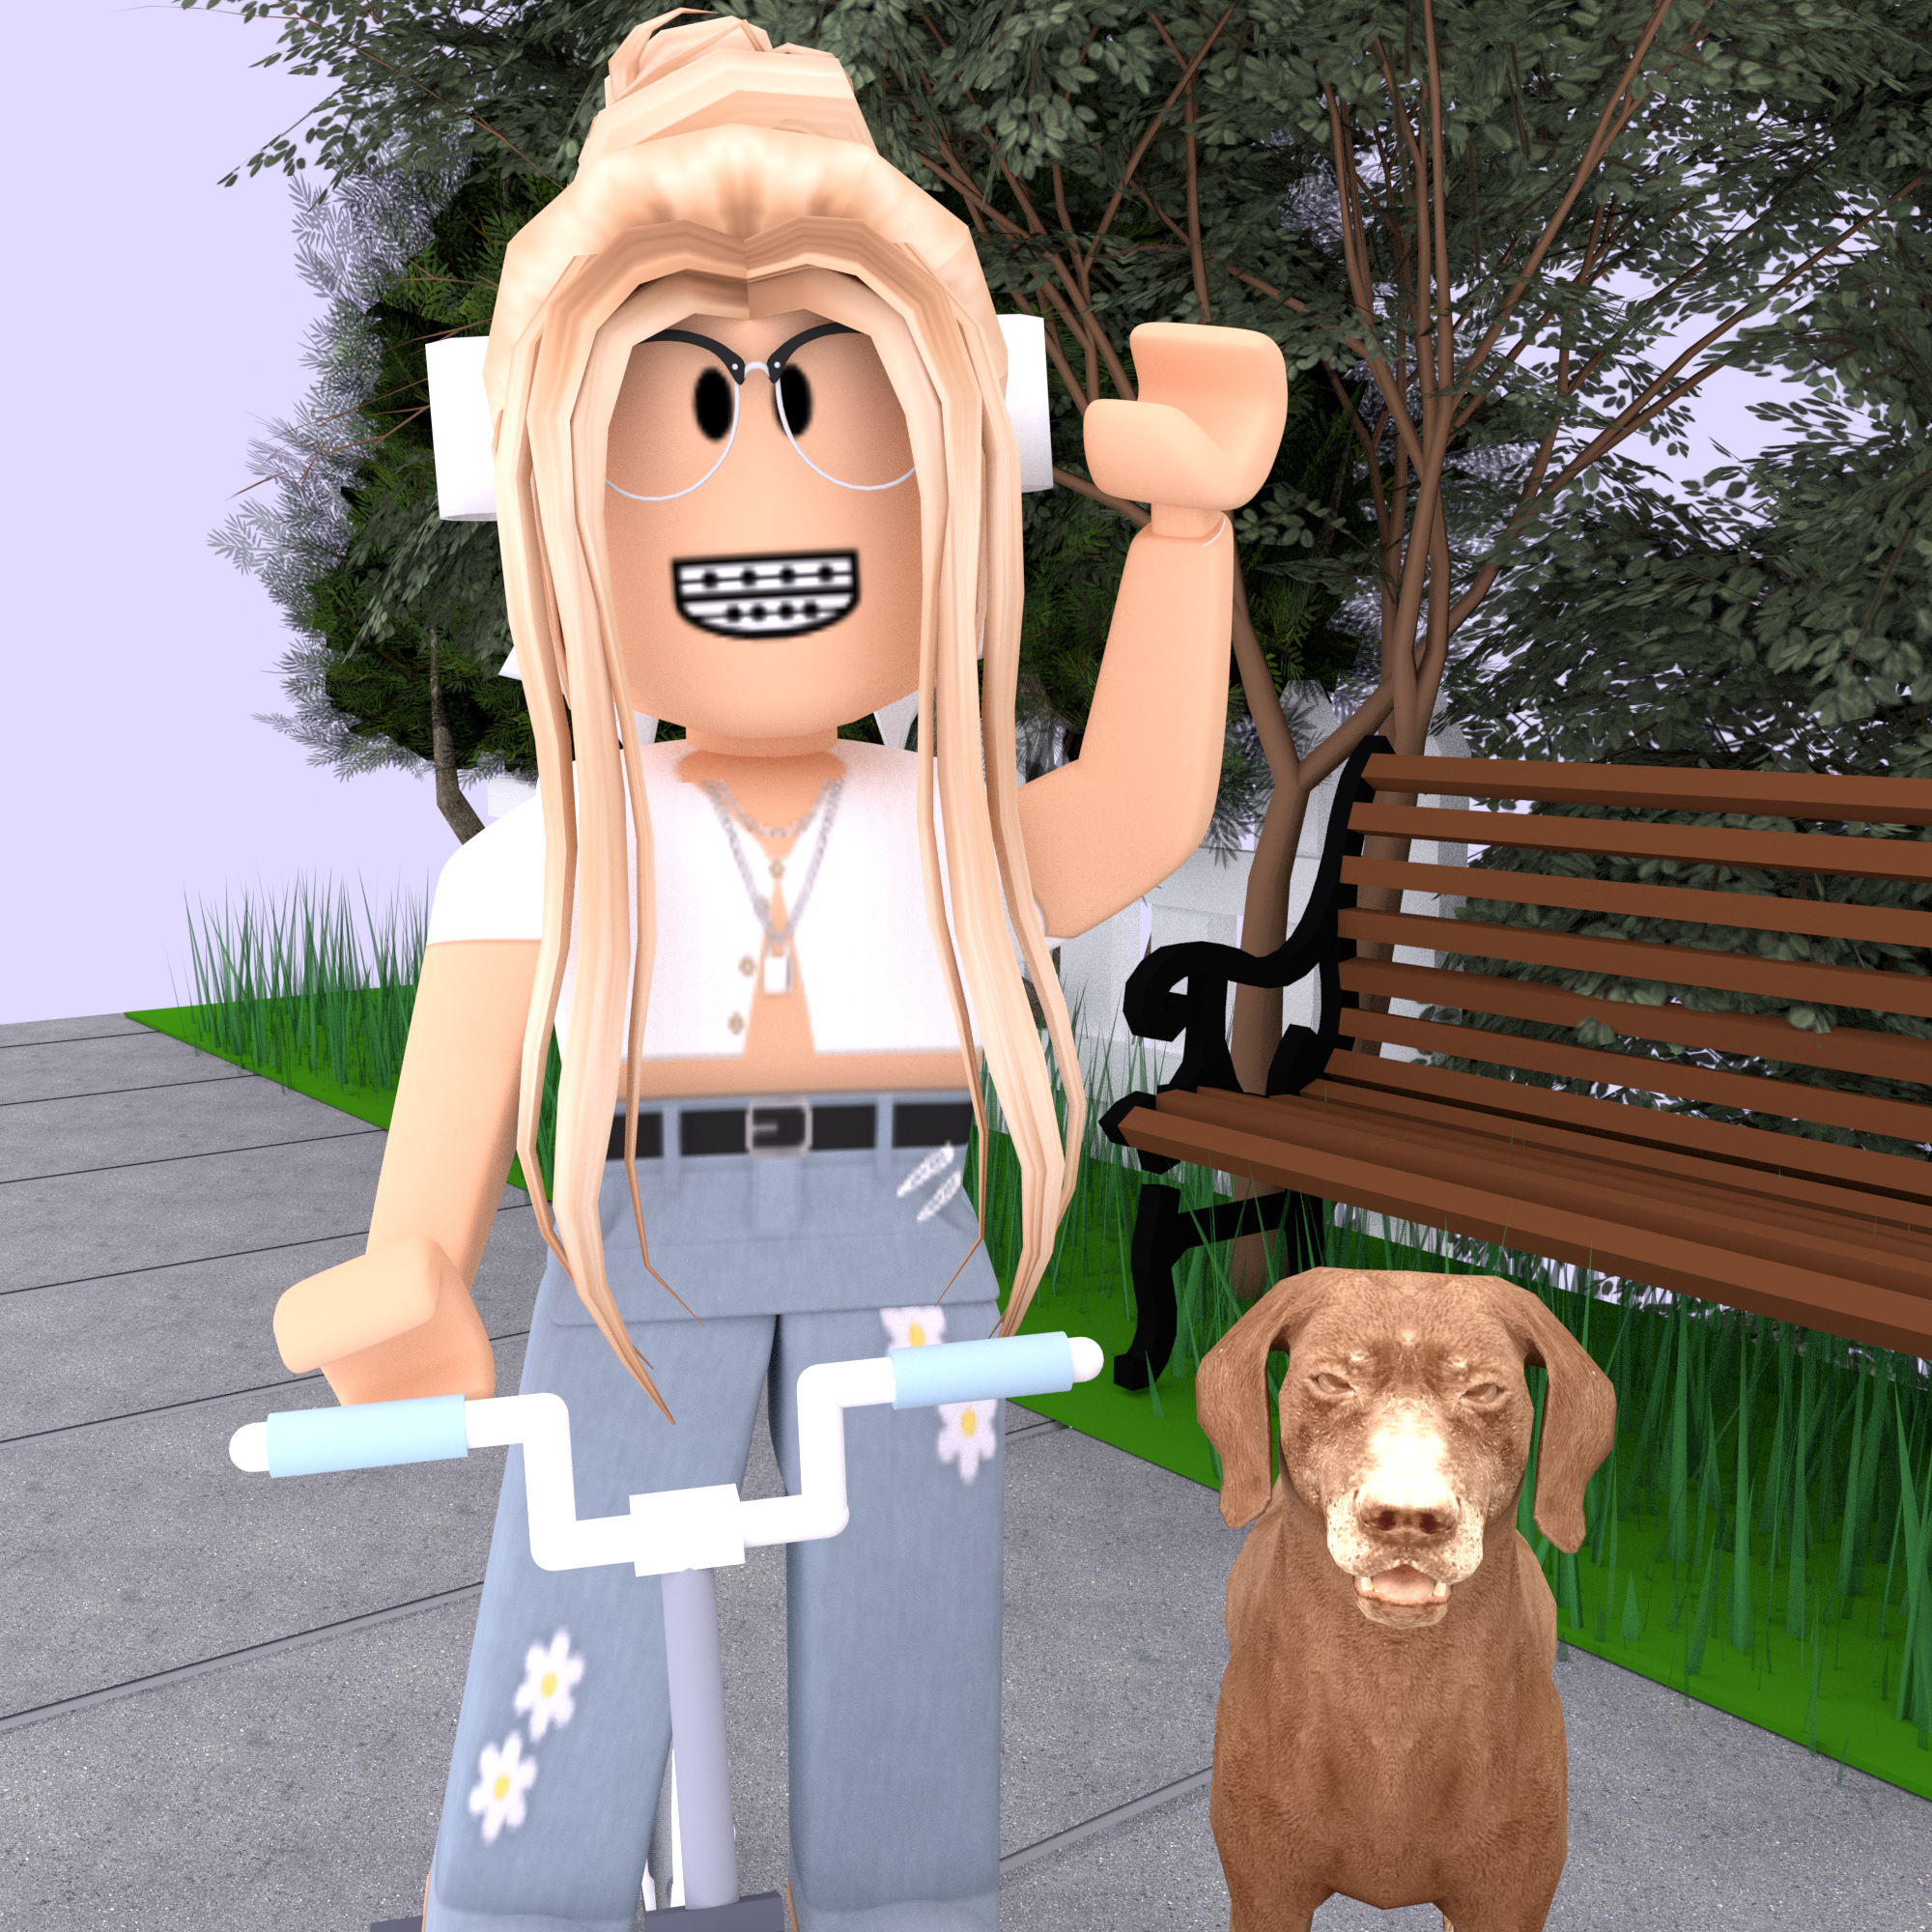 G F X In 2020 Roblox Animation Roblox Pictures Cute Tumblr Wallpaper